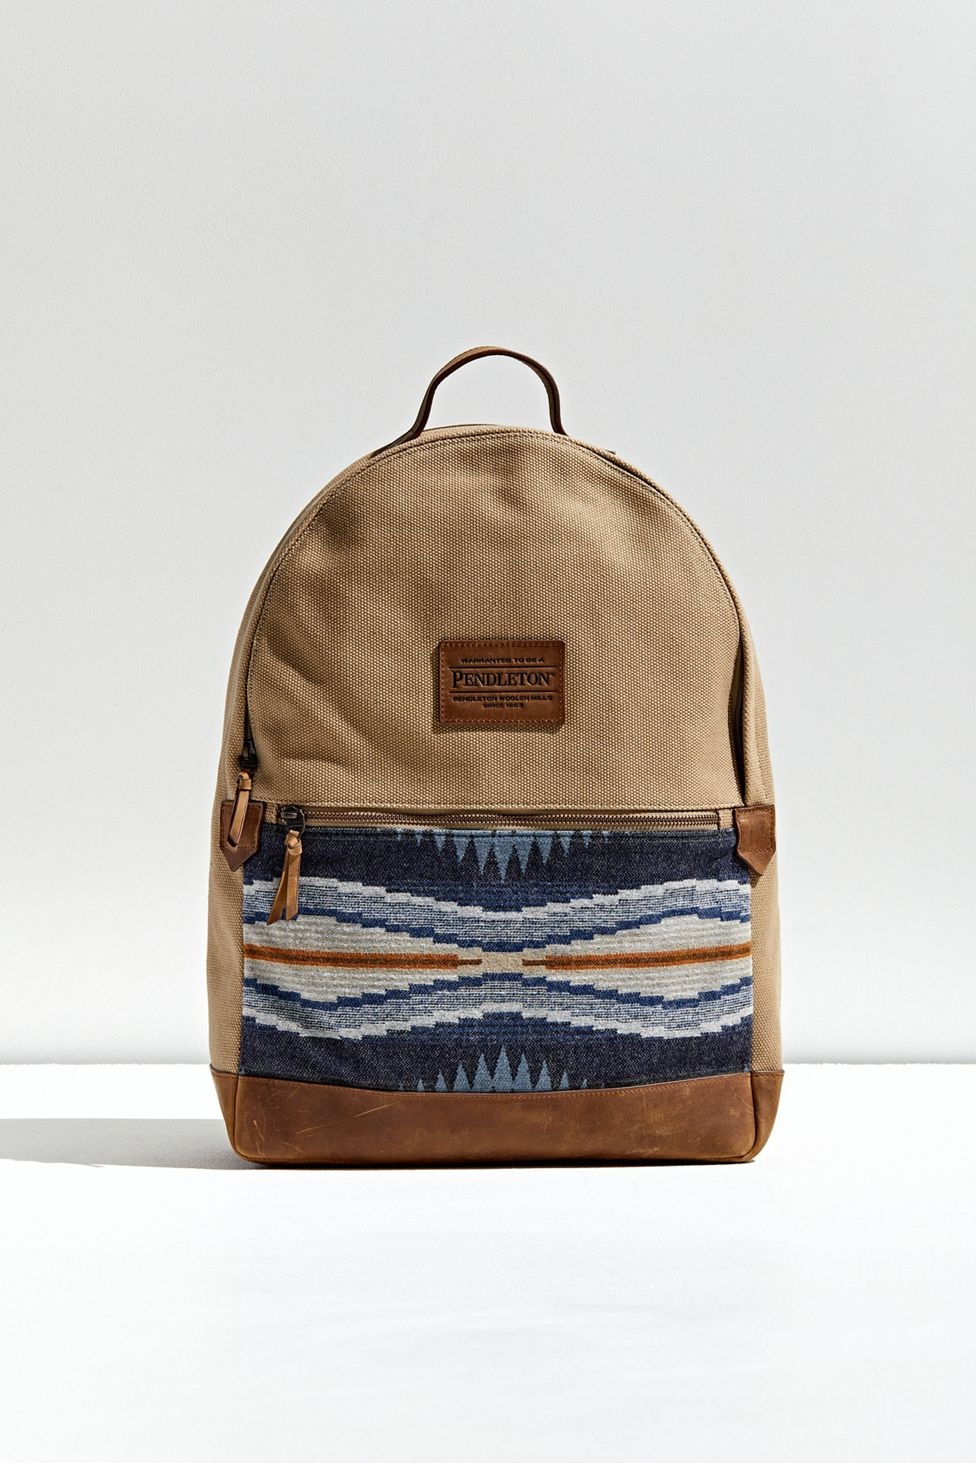 Pendleton Tan Backpack with Blue Accent